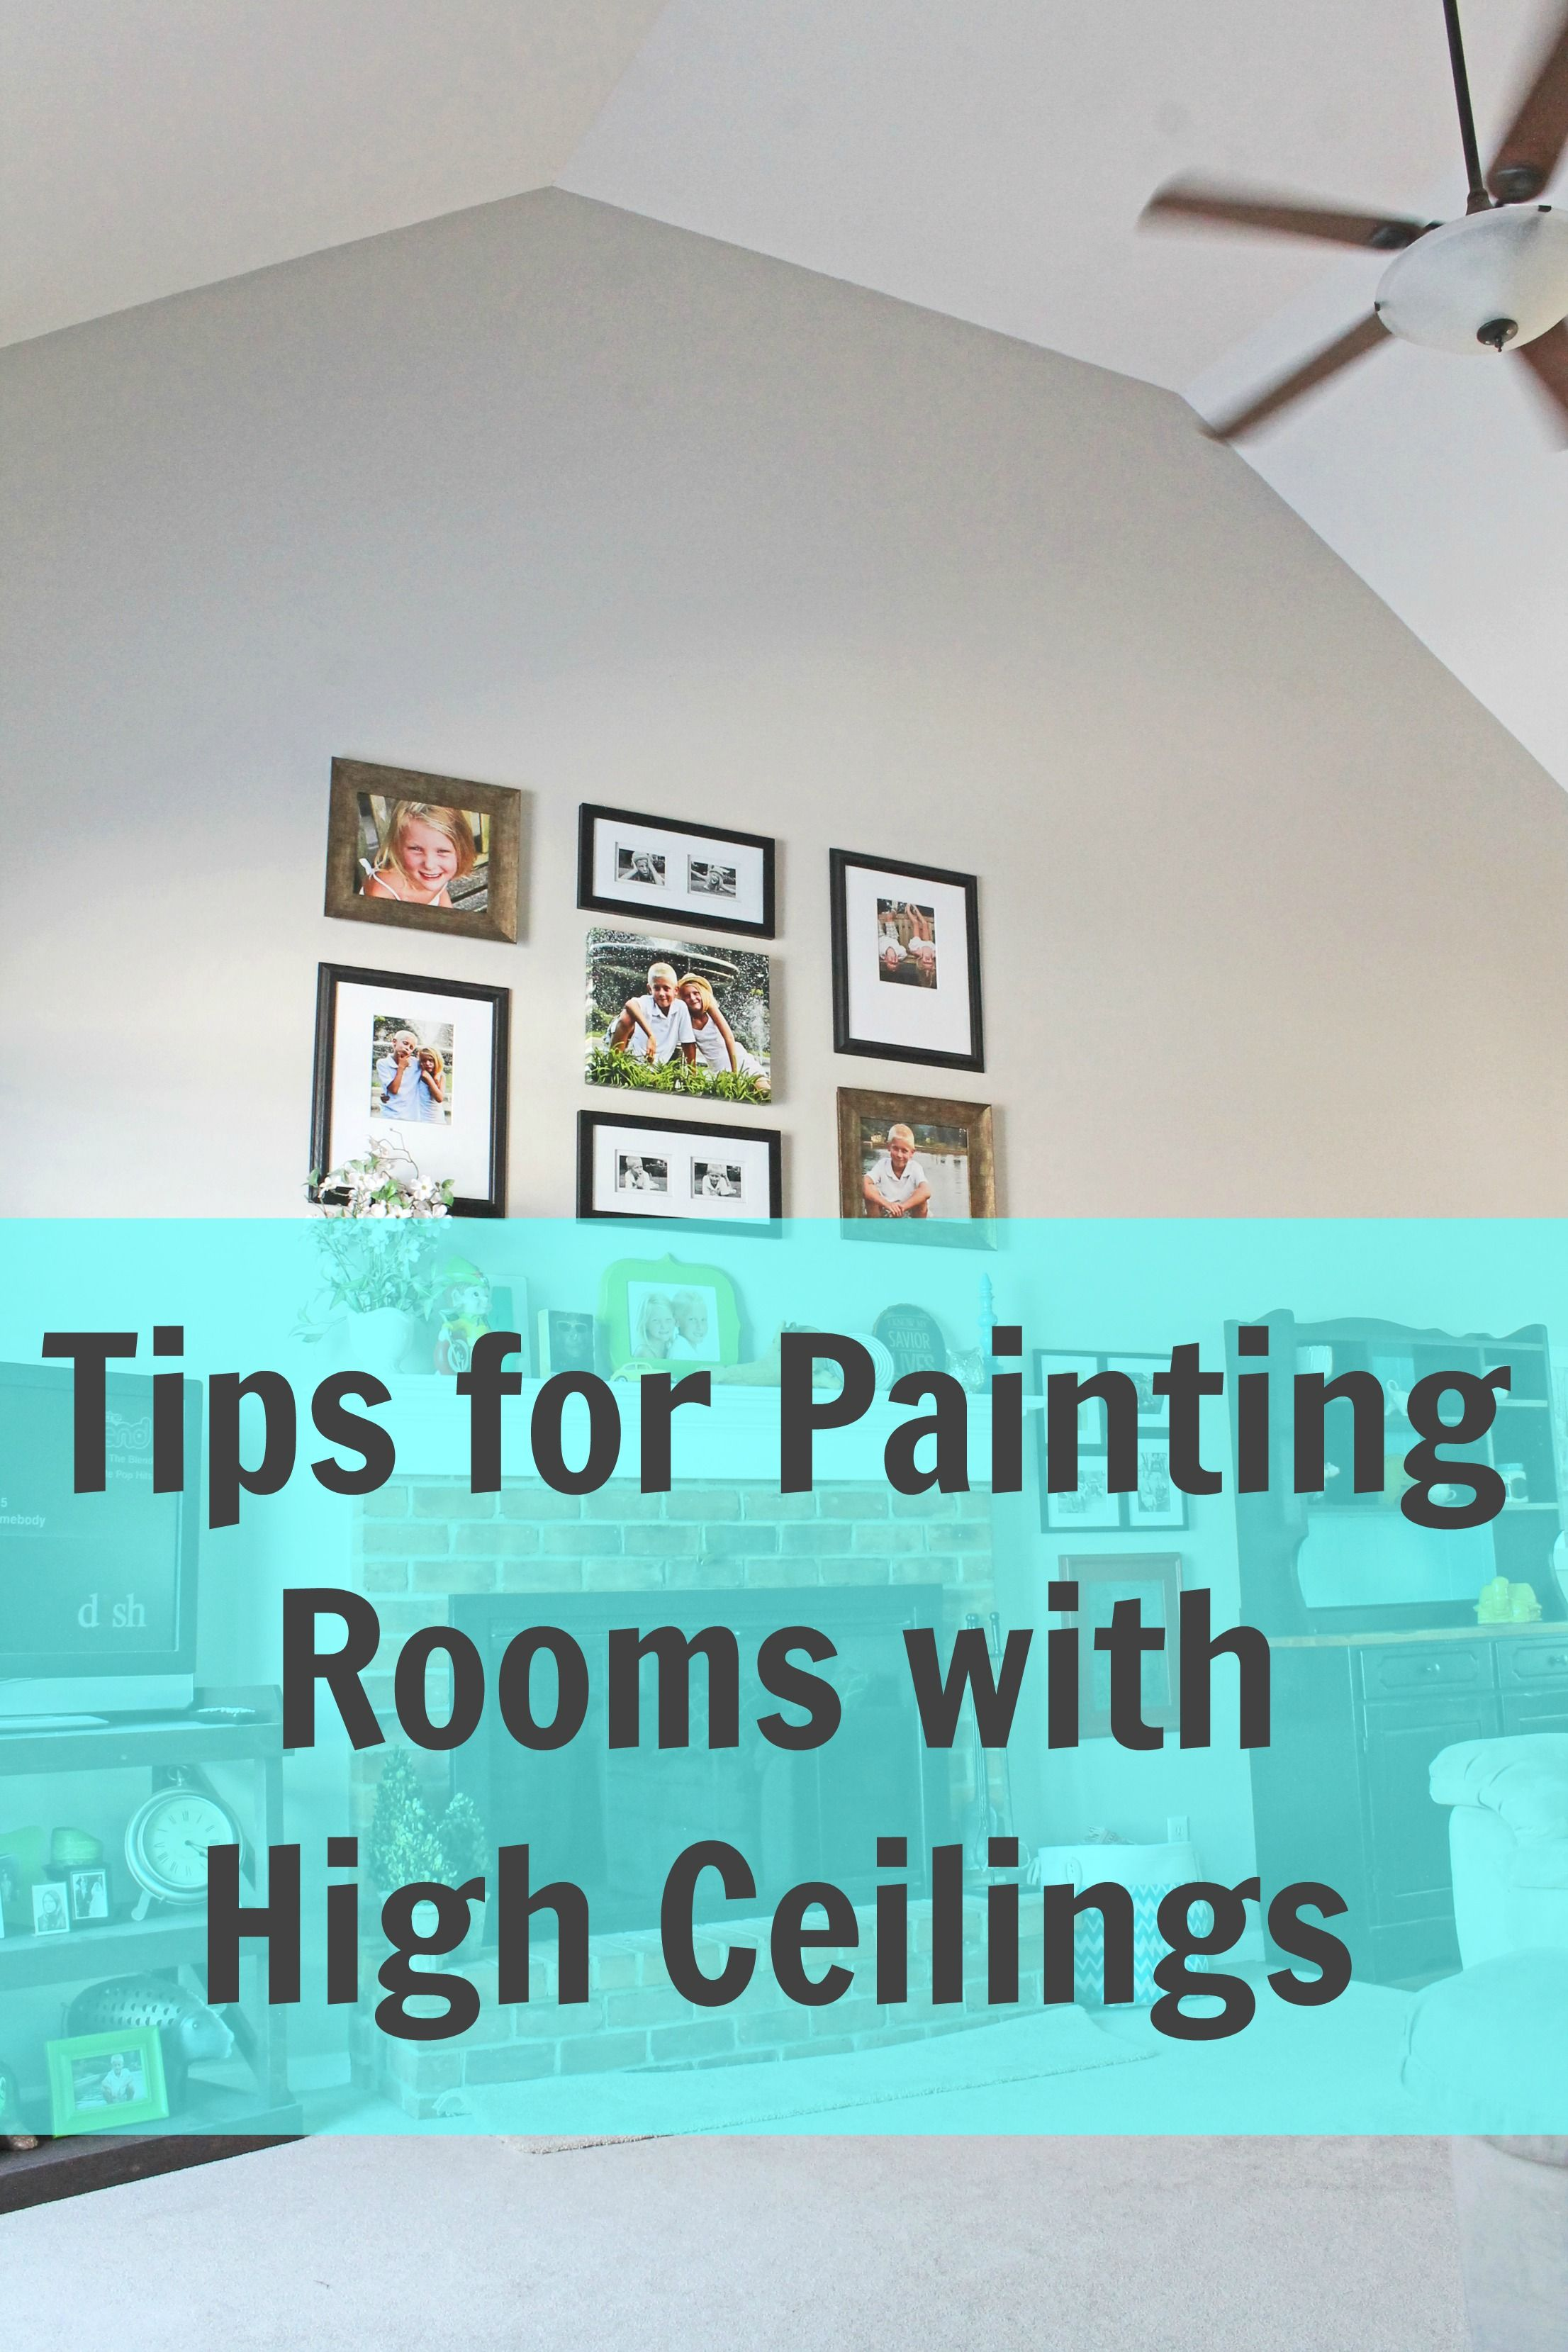 Tips for Painting Rooms with High Ceilings | Making life ...